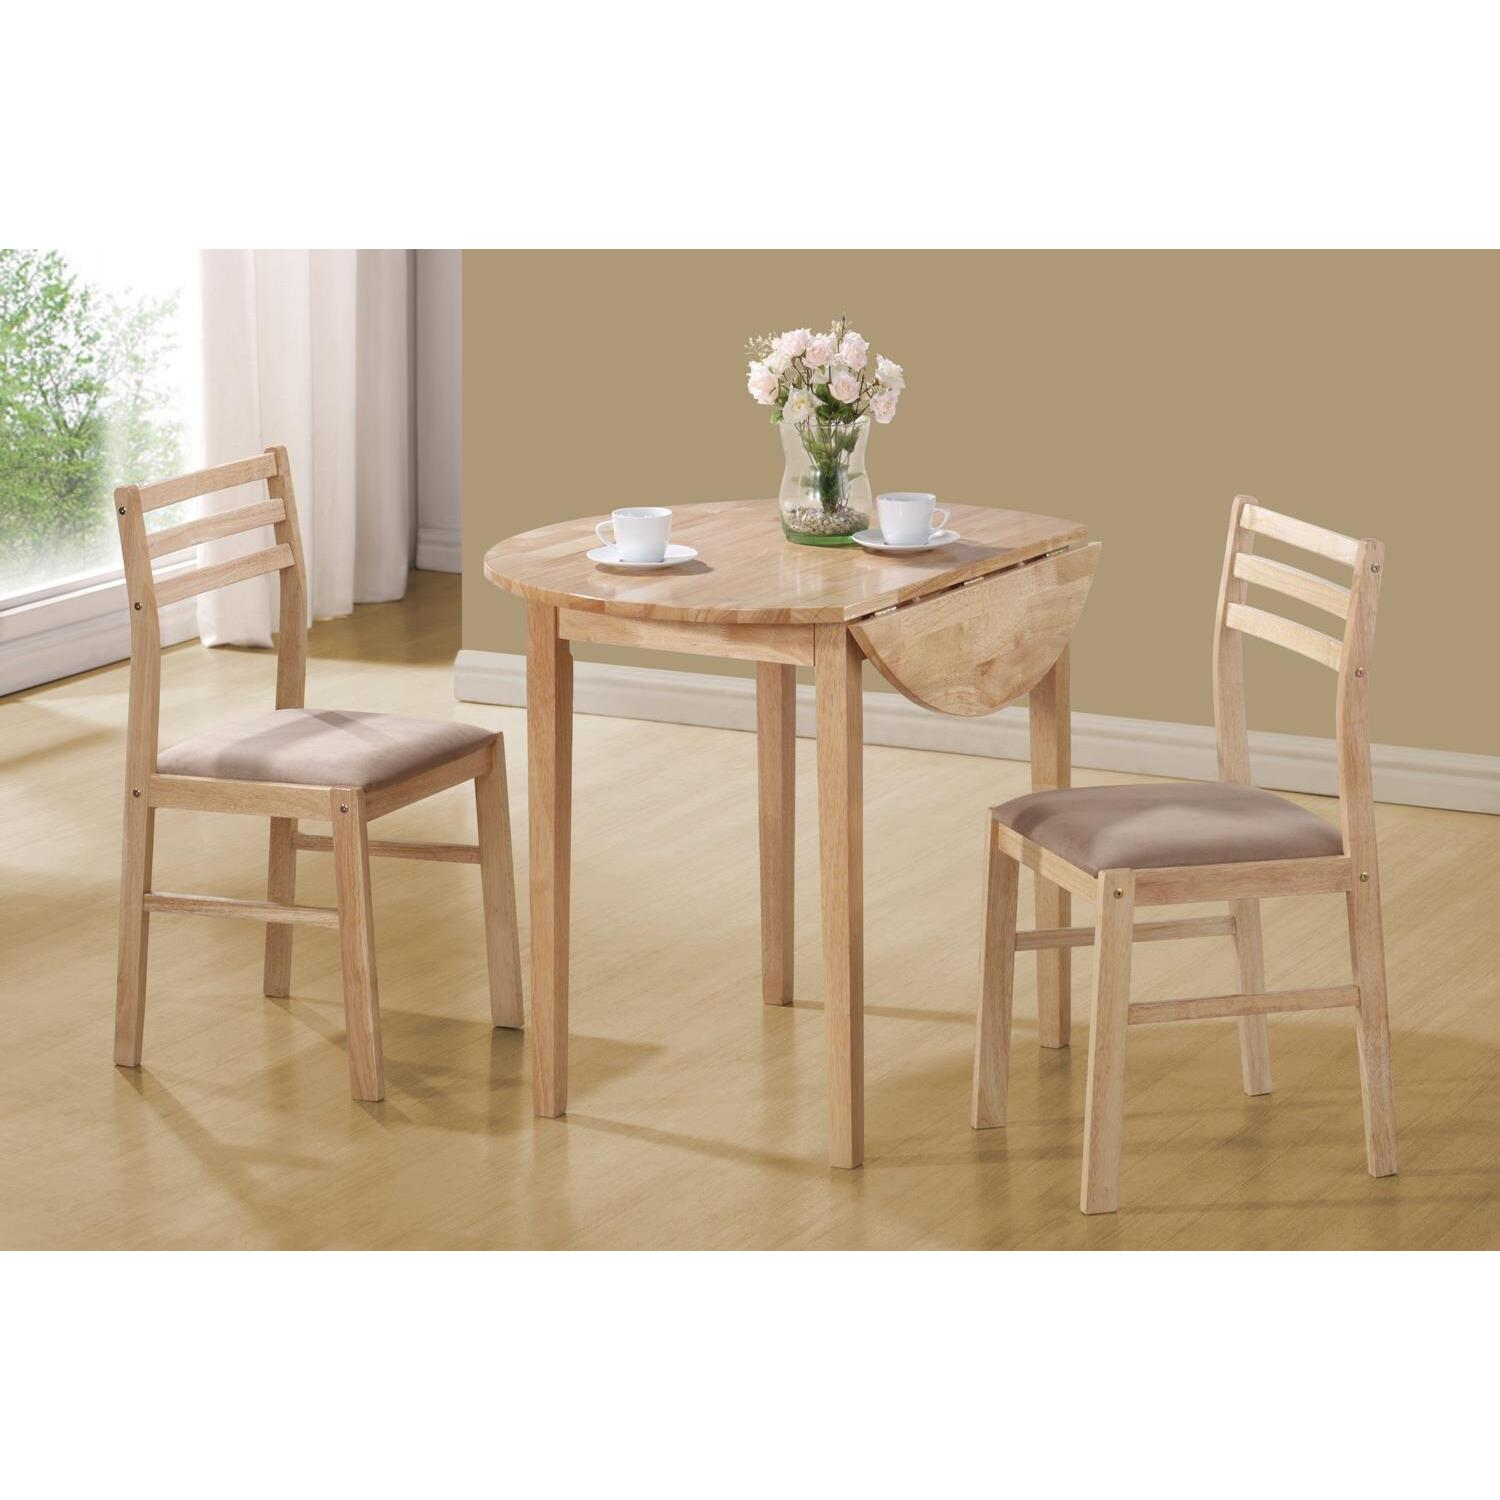 Hollywood home 3 piece dining set by oj commerce for Breakfast table and chairs